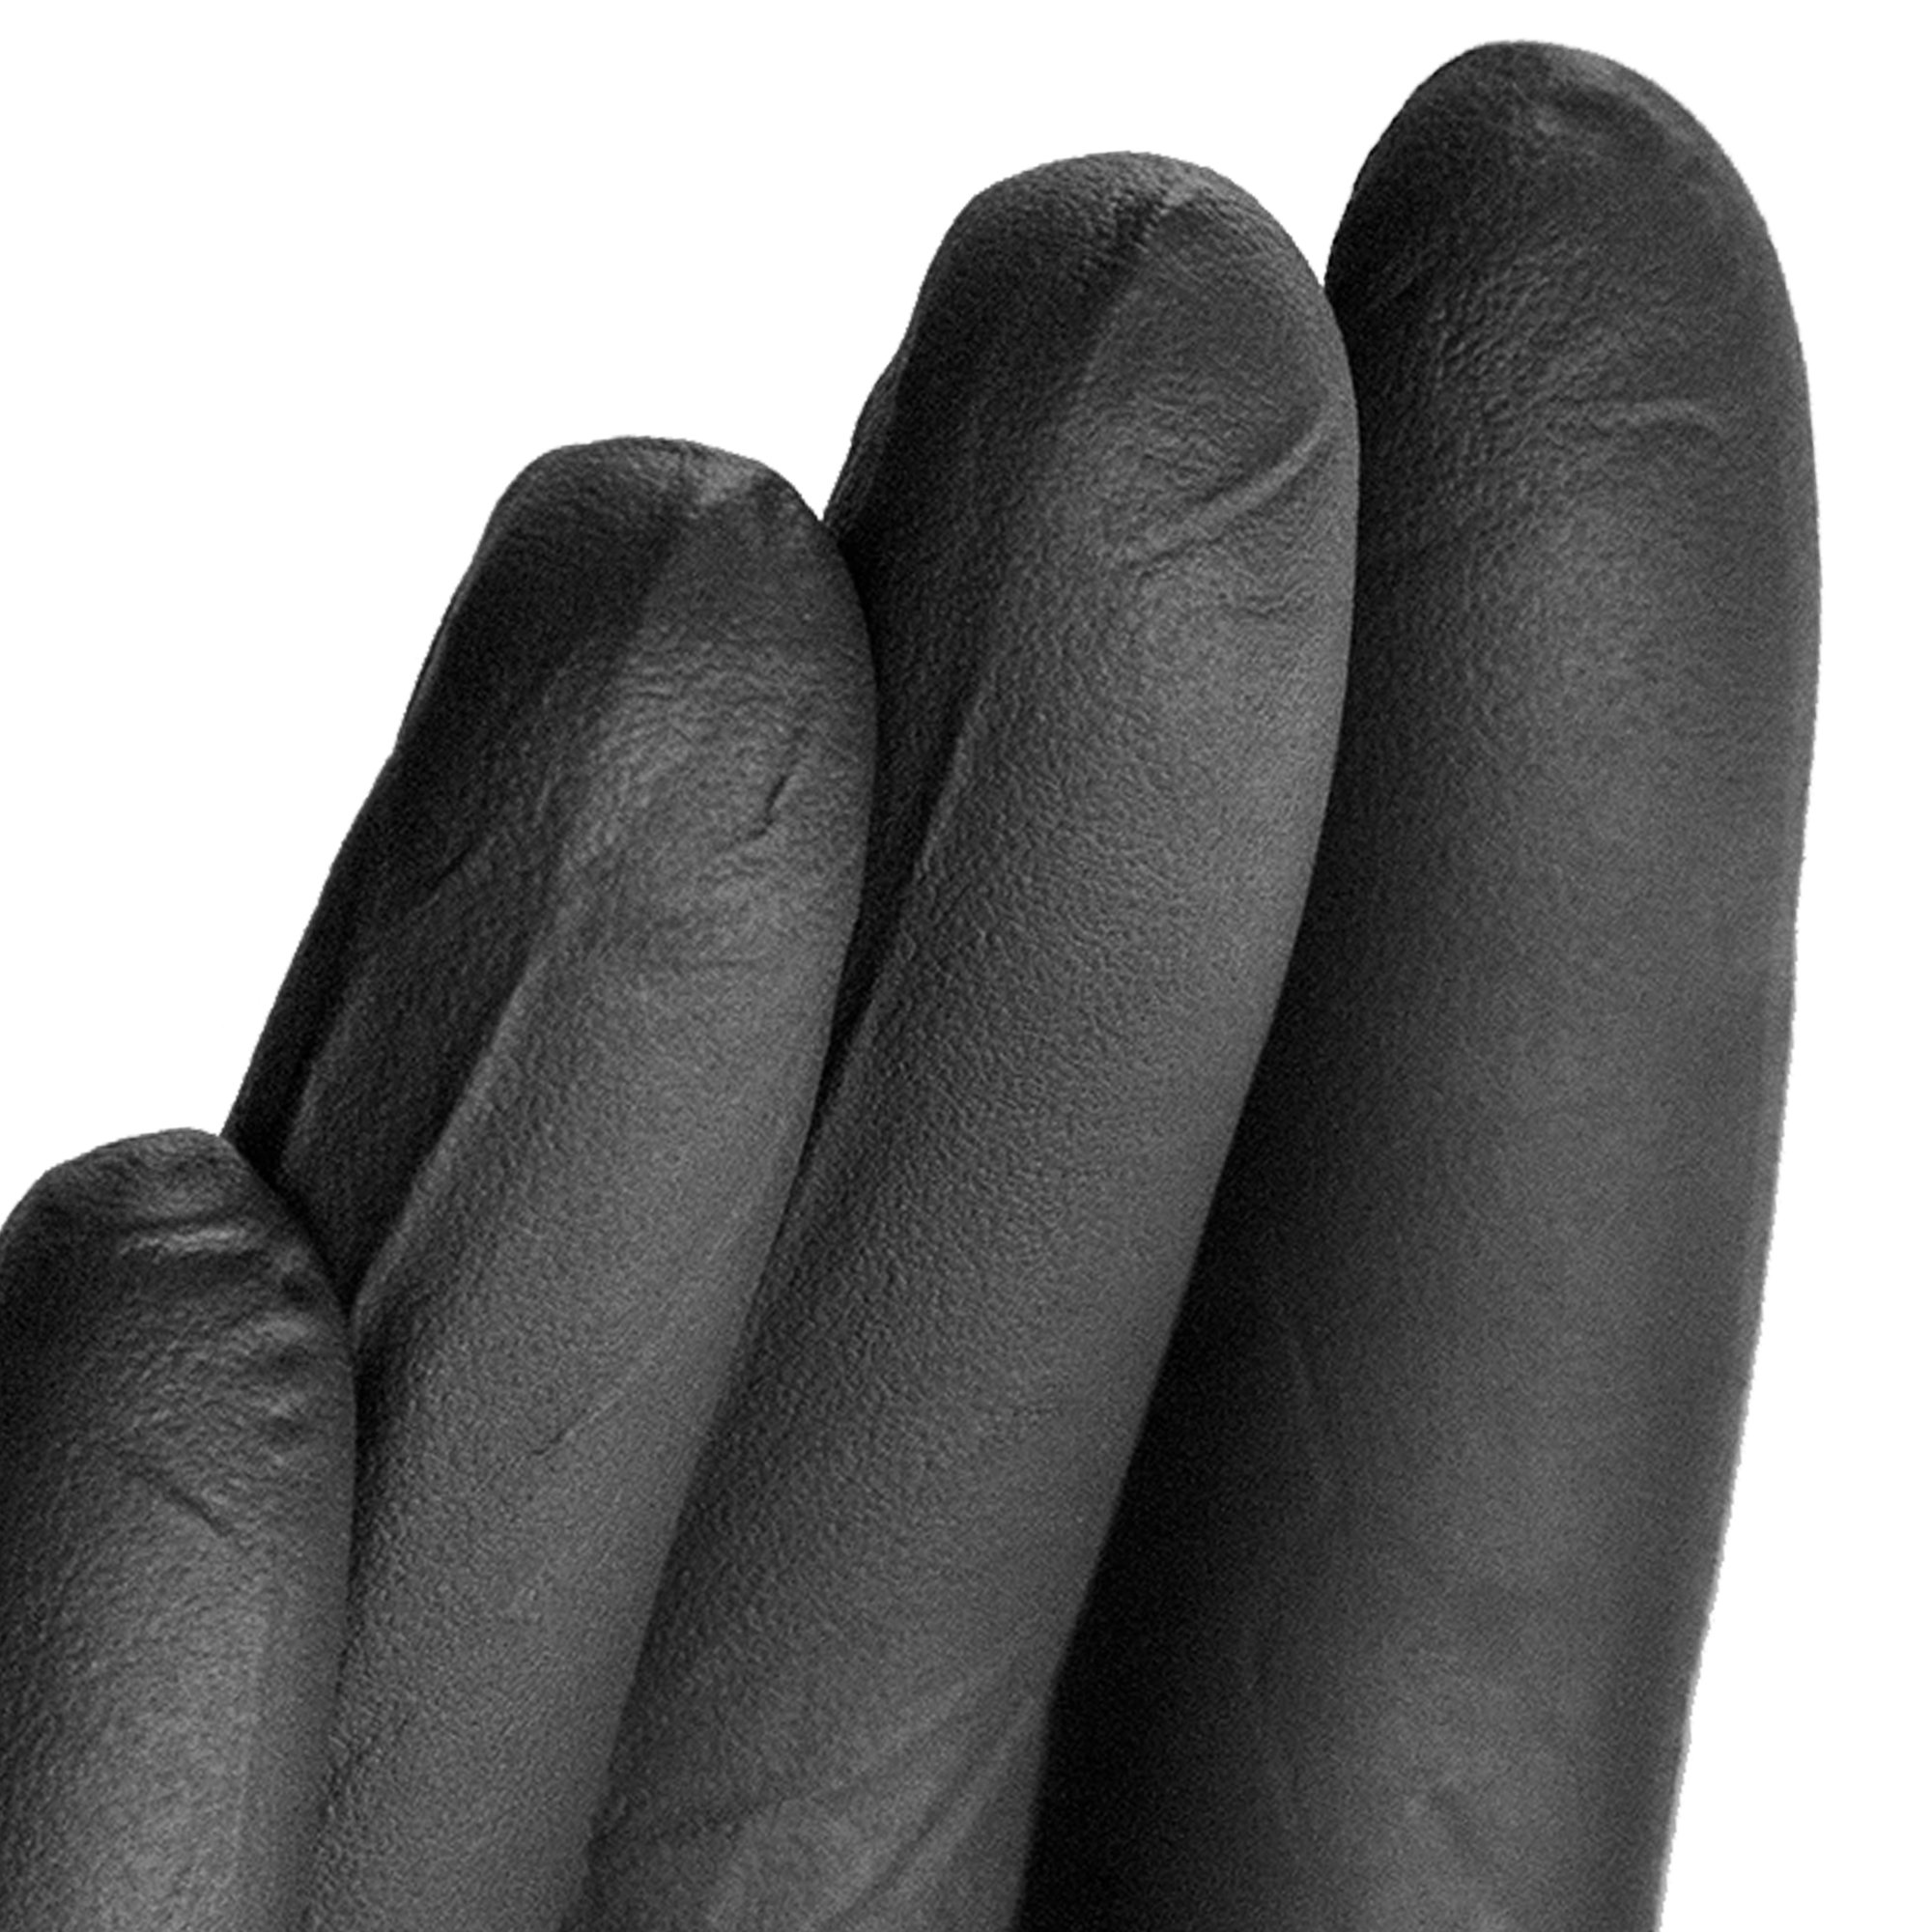 AMMEX - BINPF46100 - Industrial Nitrile Gloves - Gloveworks - Disposable, Powder Free, 5 mil, Large, Black (Case of 1000) by Ammex (Image #2)